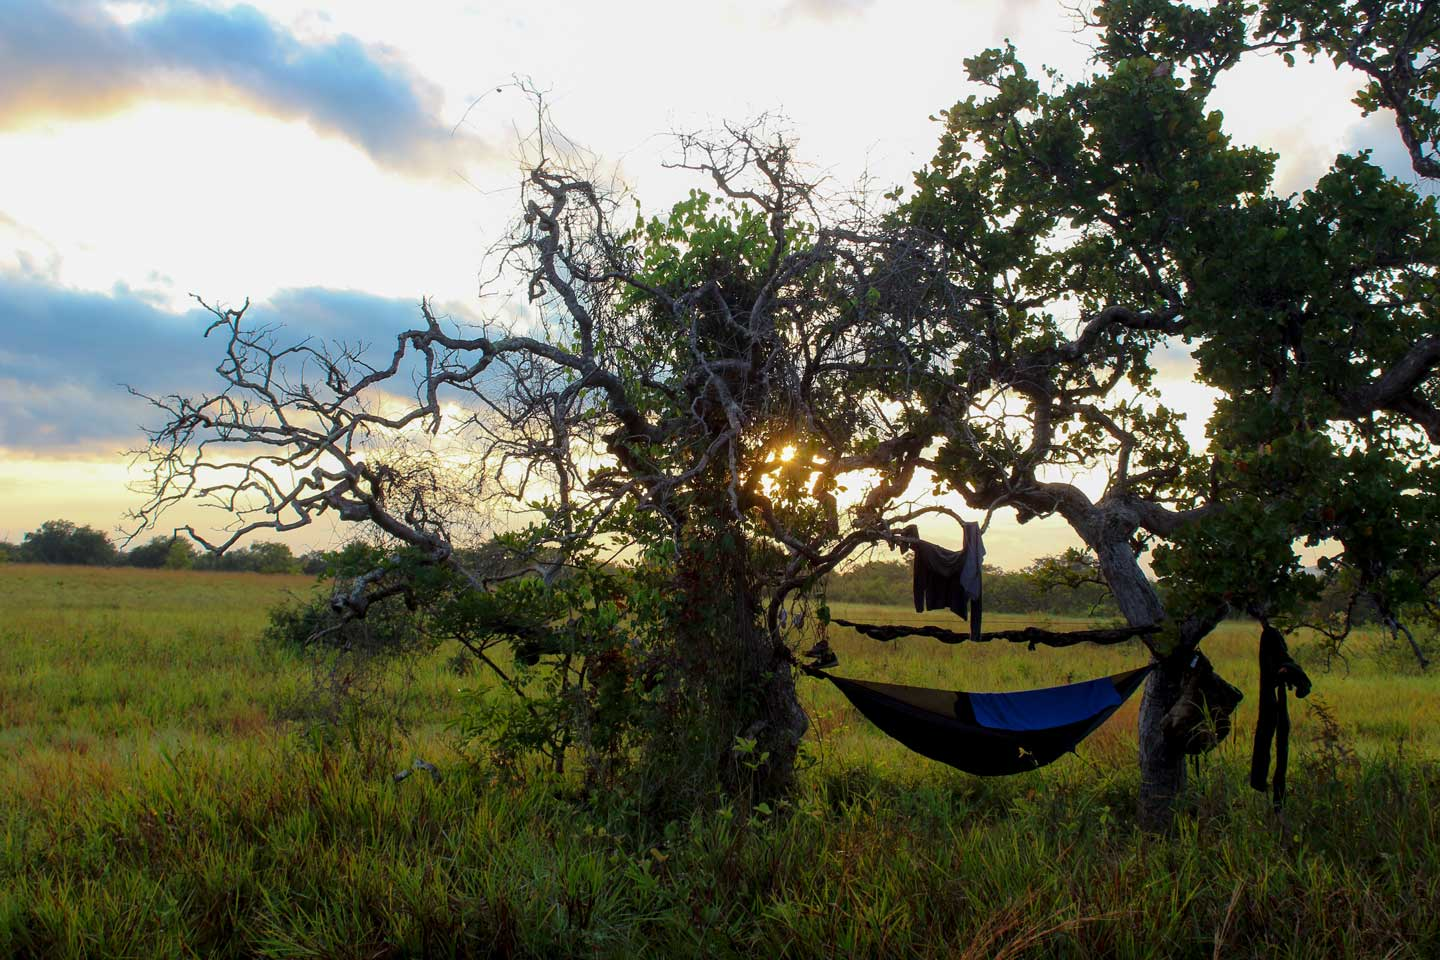 atv-sunset-hammock